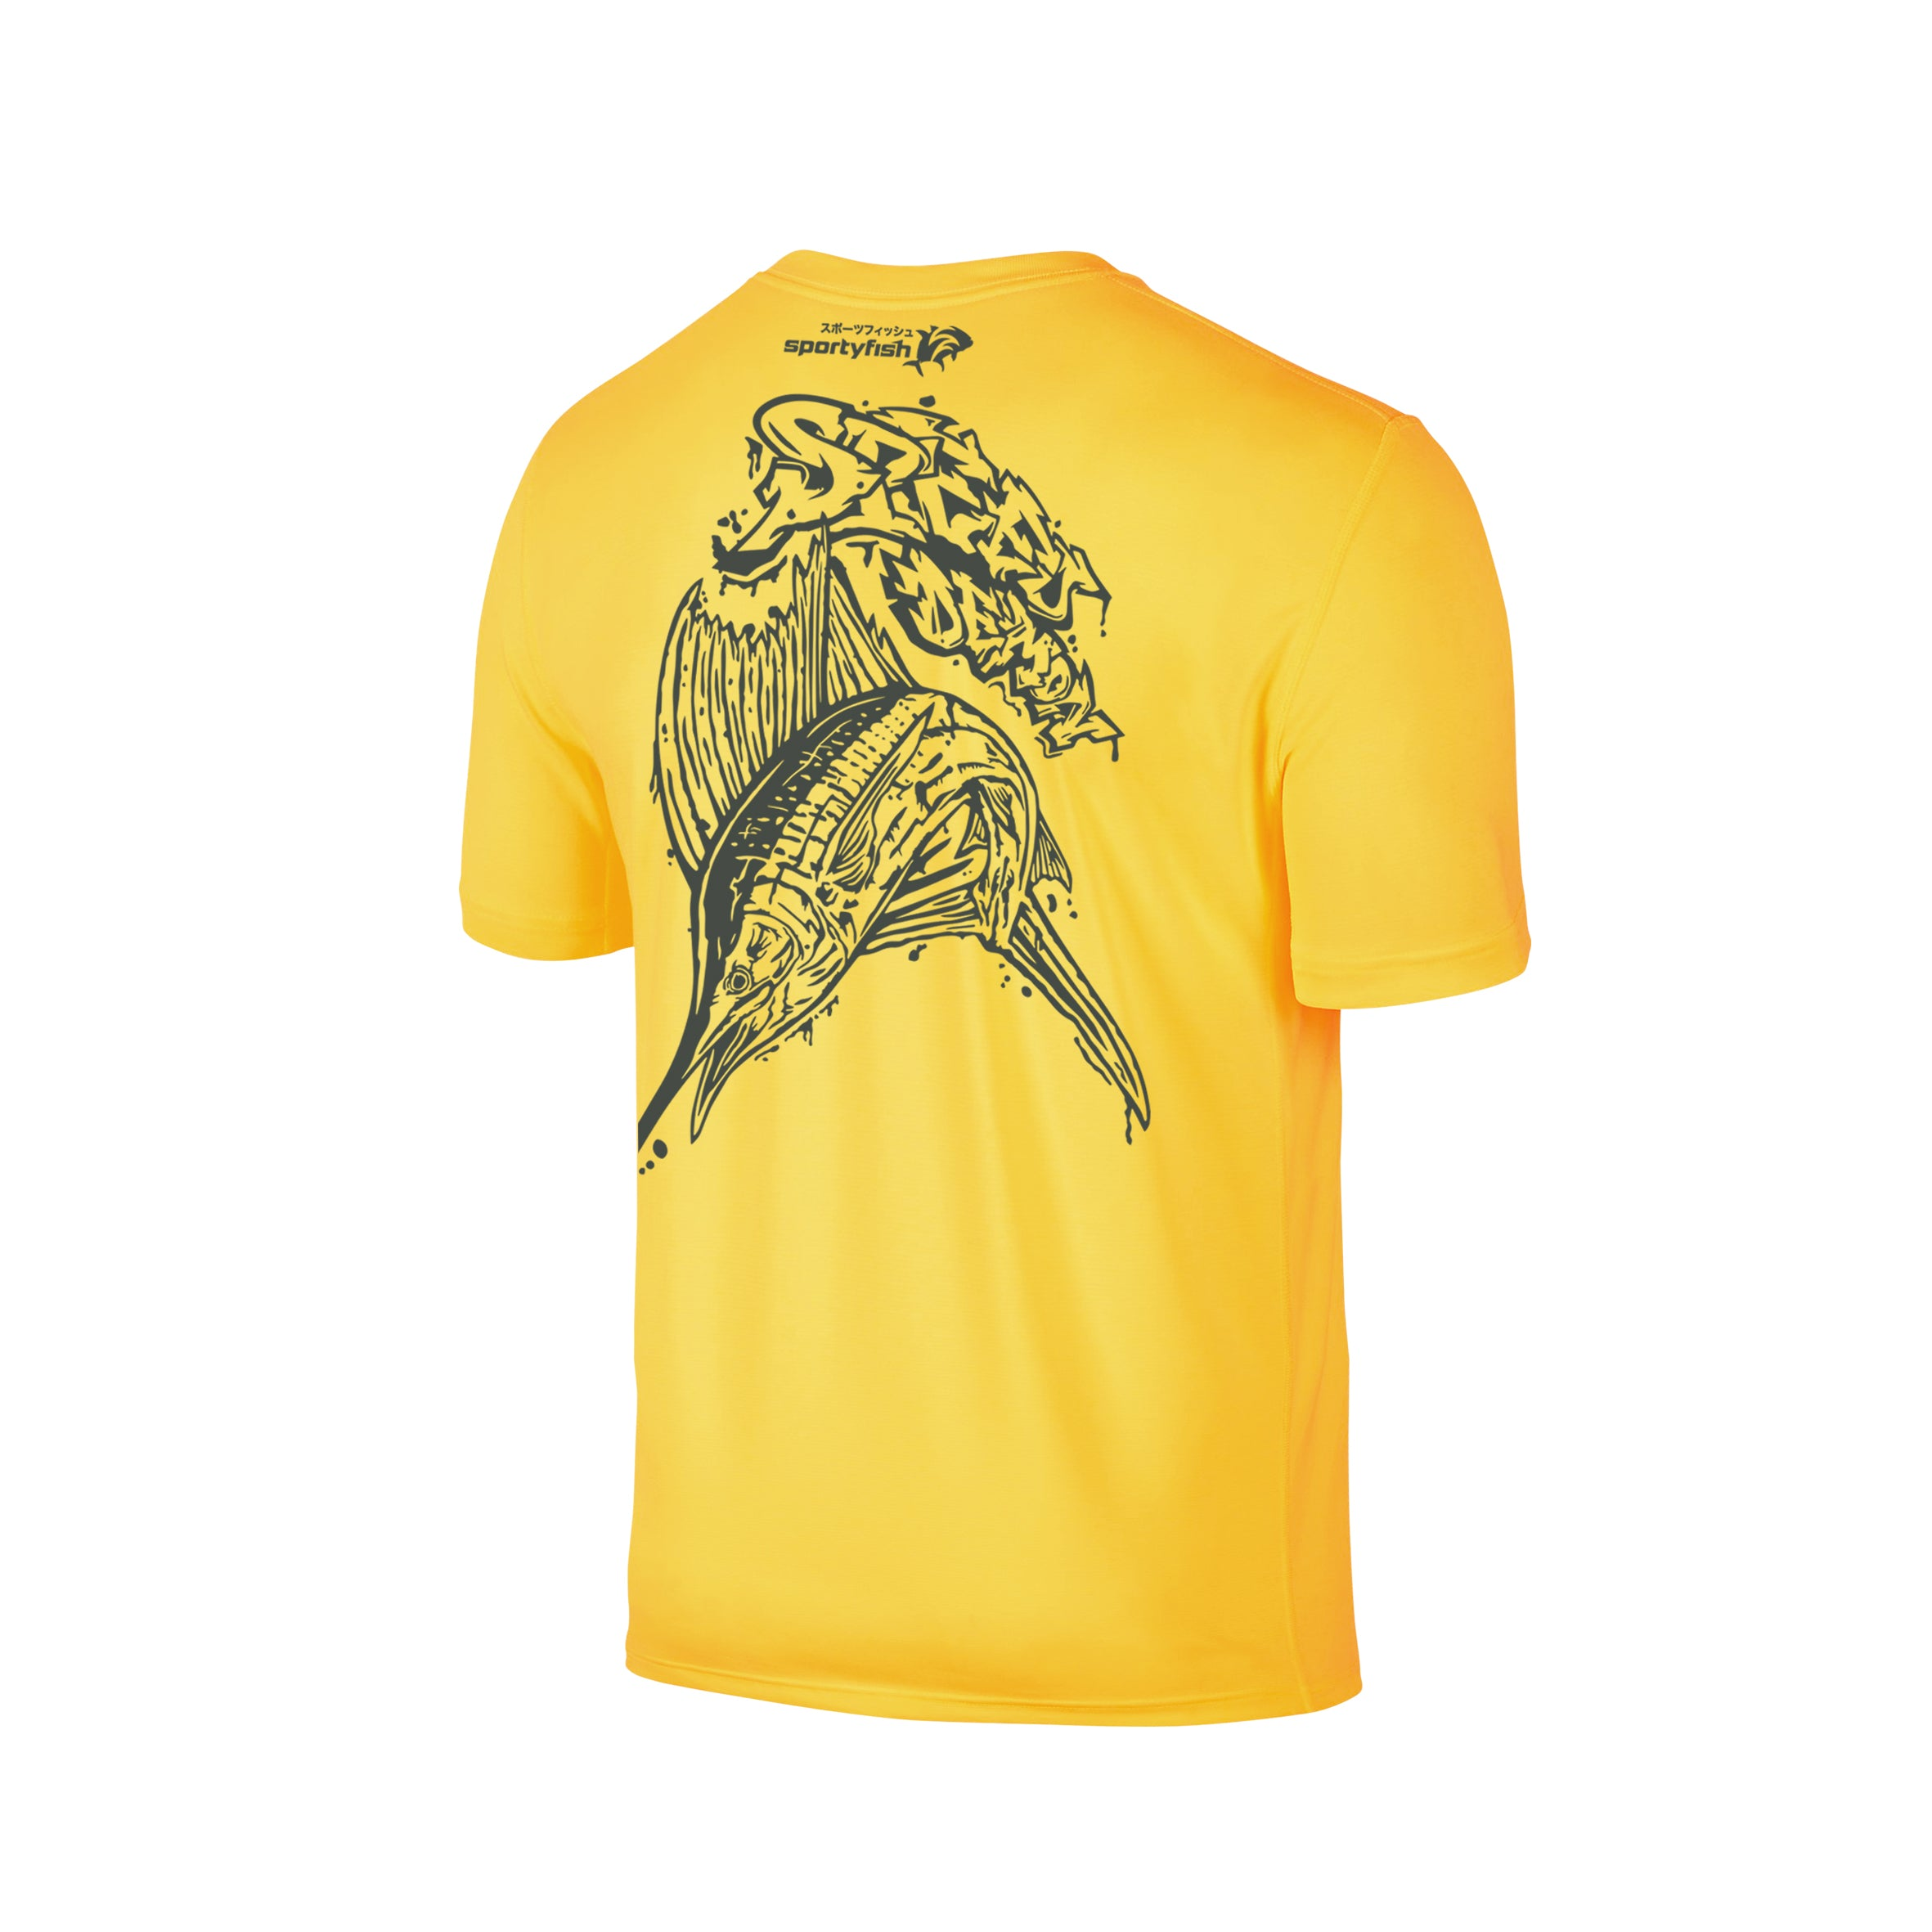 Wildstyle Graffiti Series Yellow T-shirt(back view)Tungsten: Atlantic Sailfish